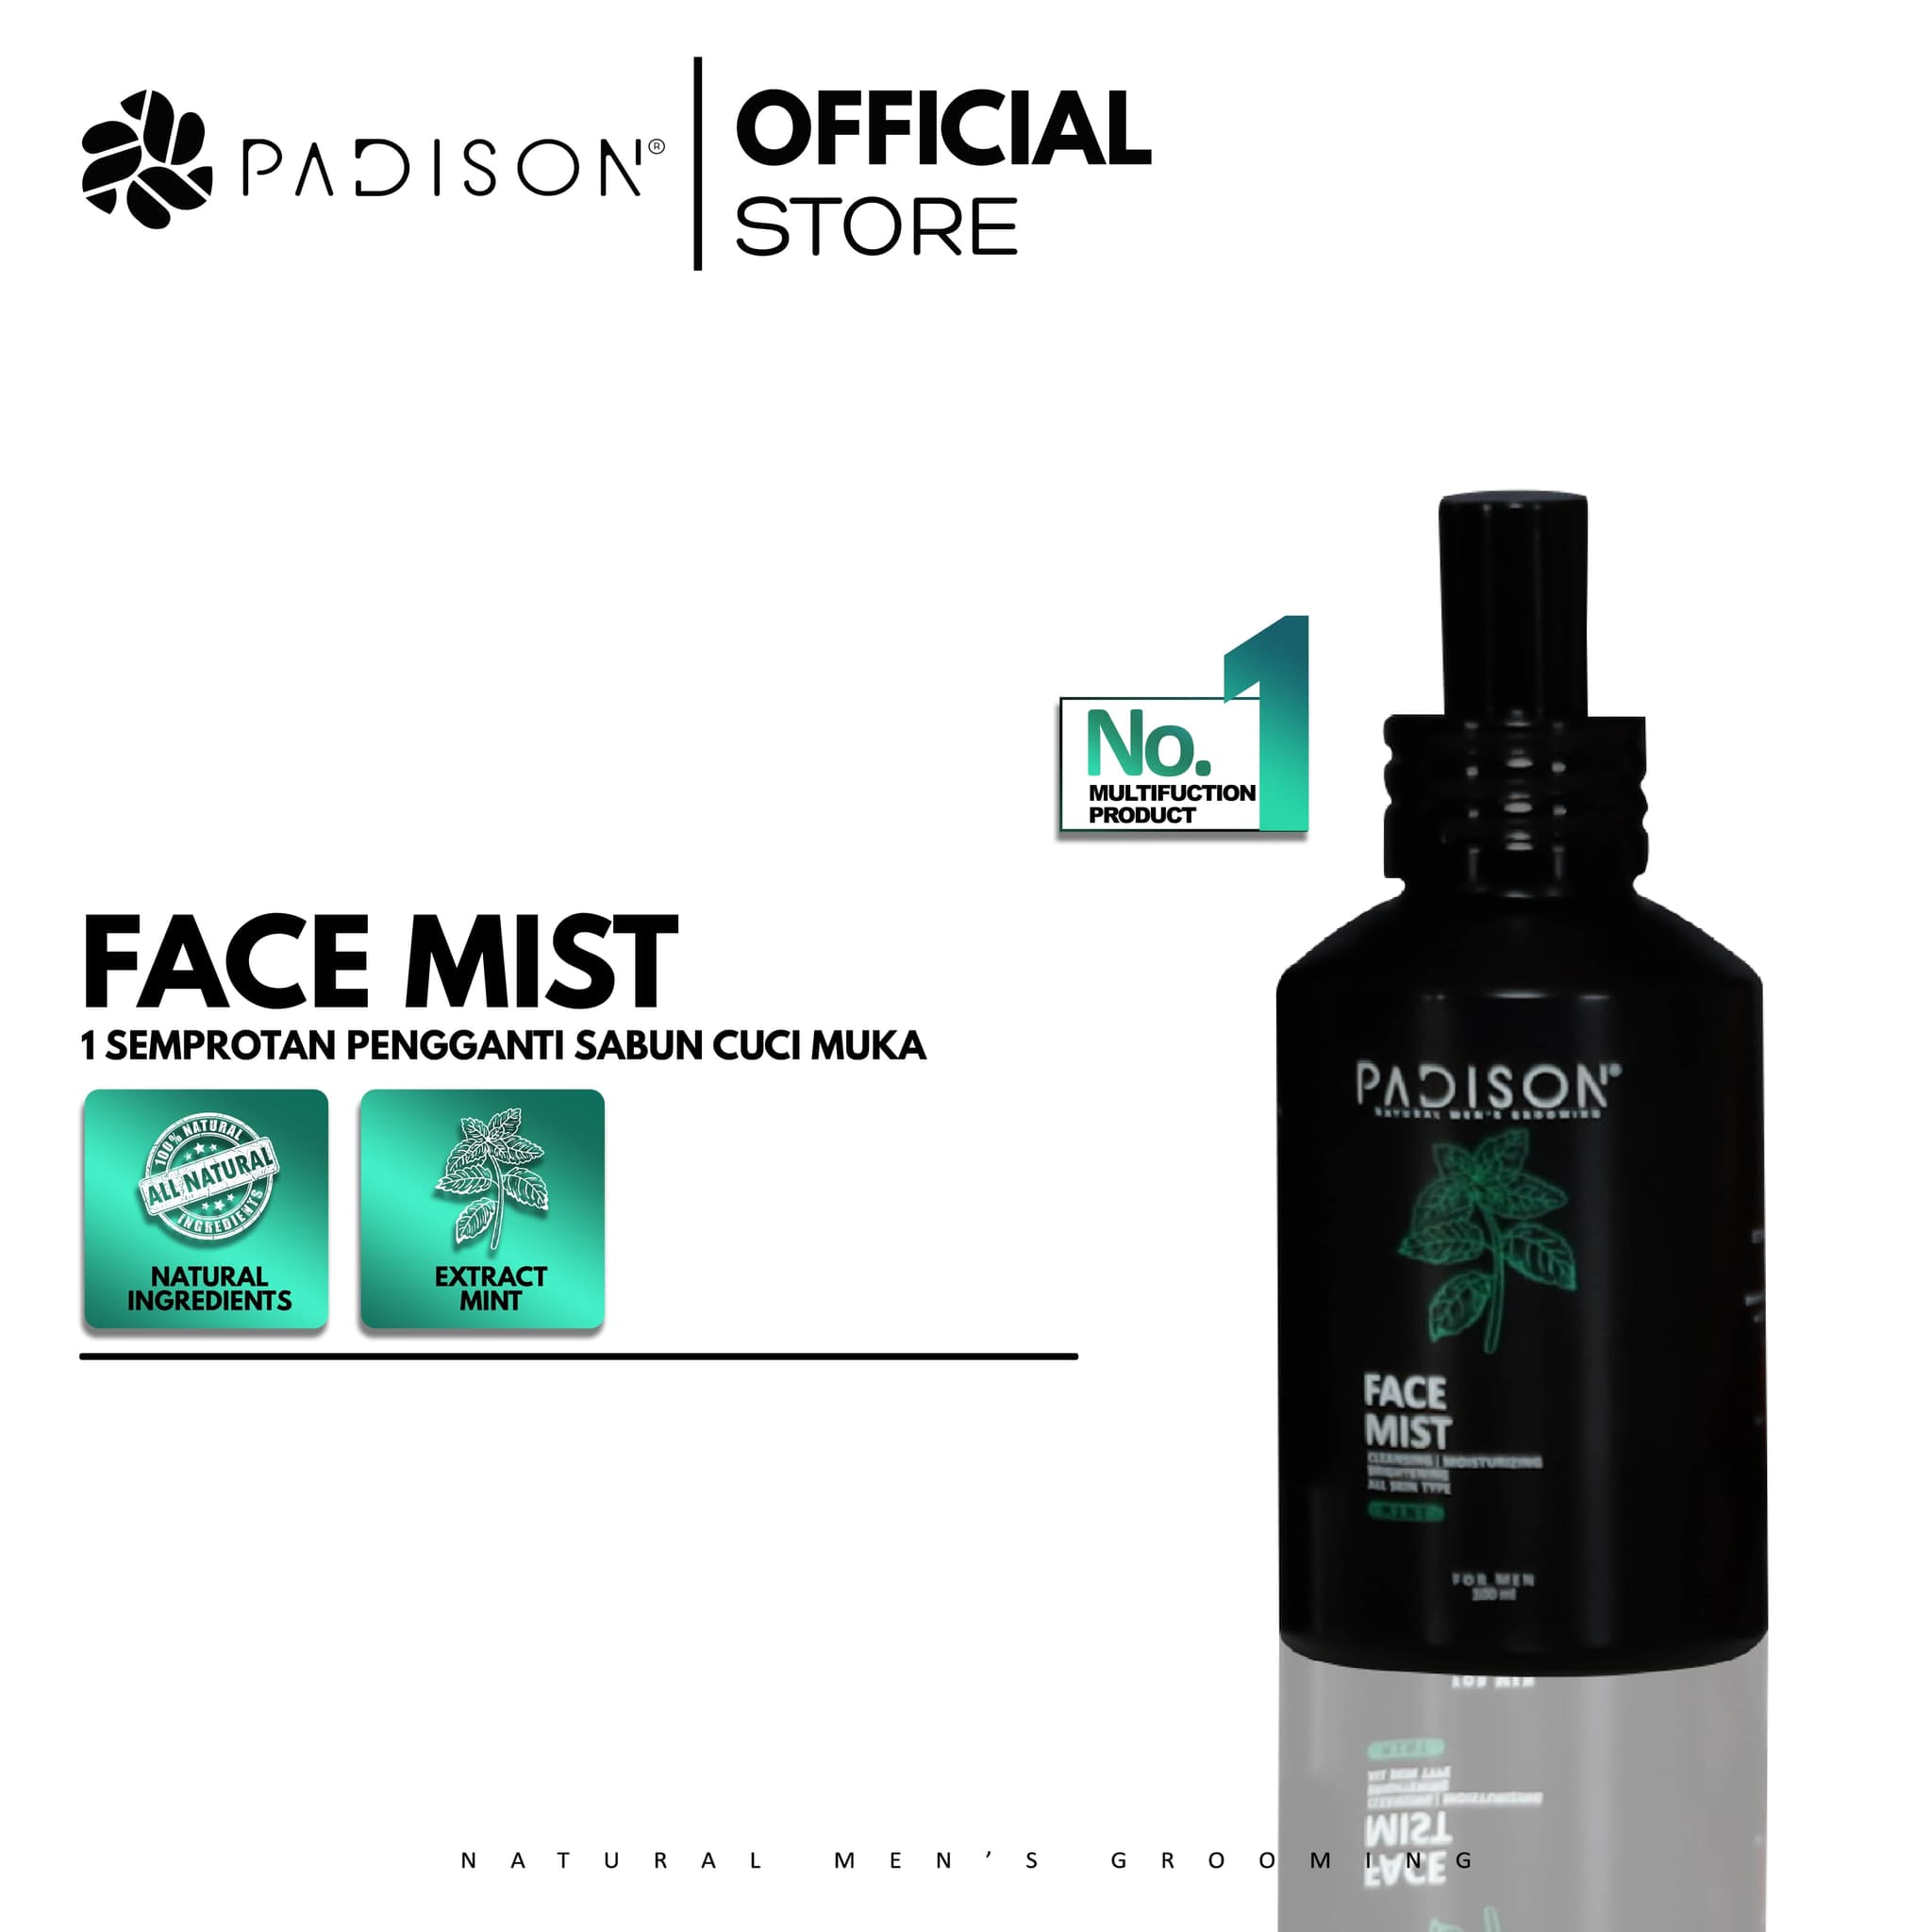 Face Mist 100ml with Extract Mint Pembersih muka semprot pria thumbnail